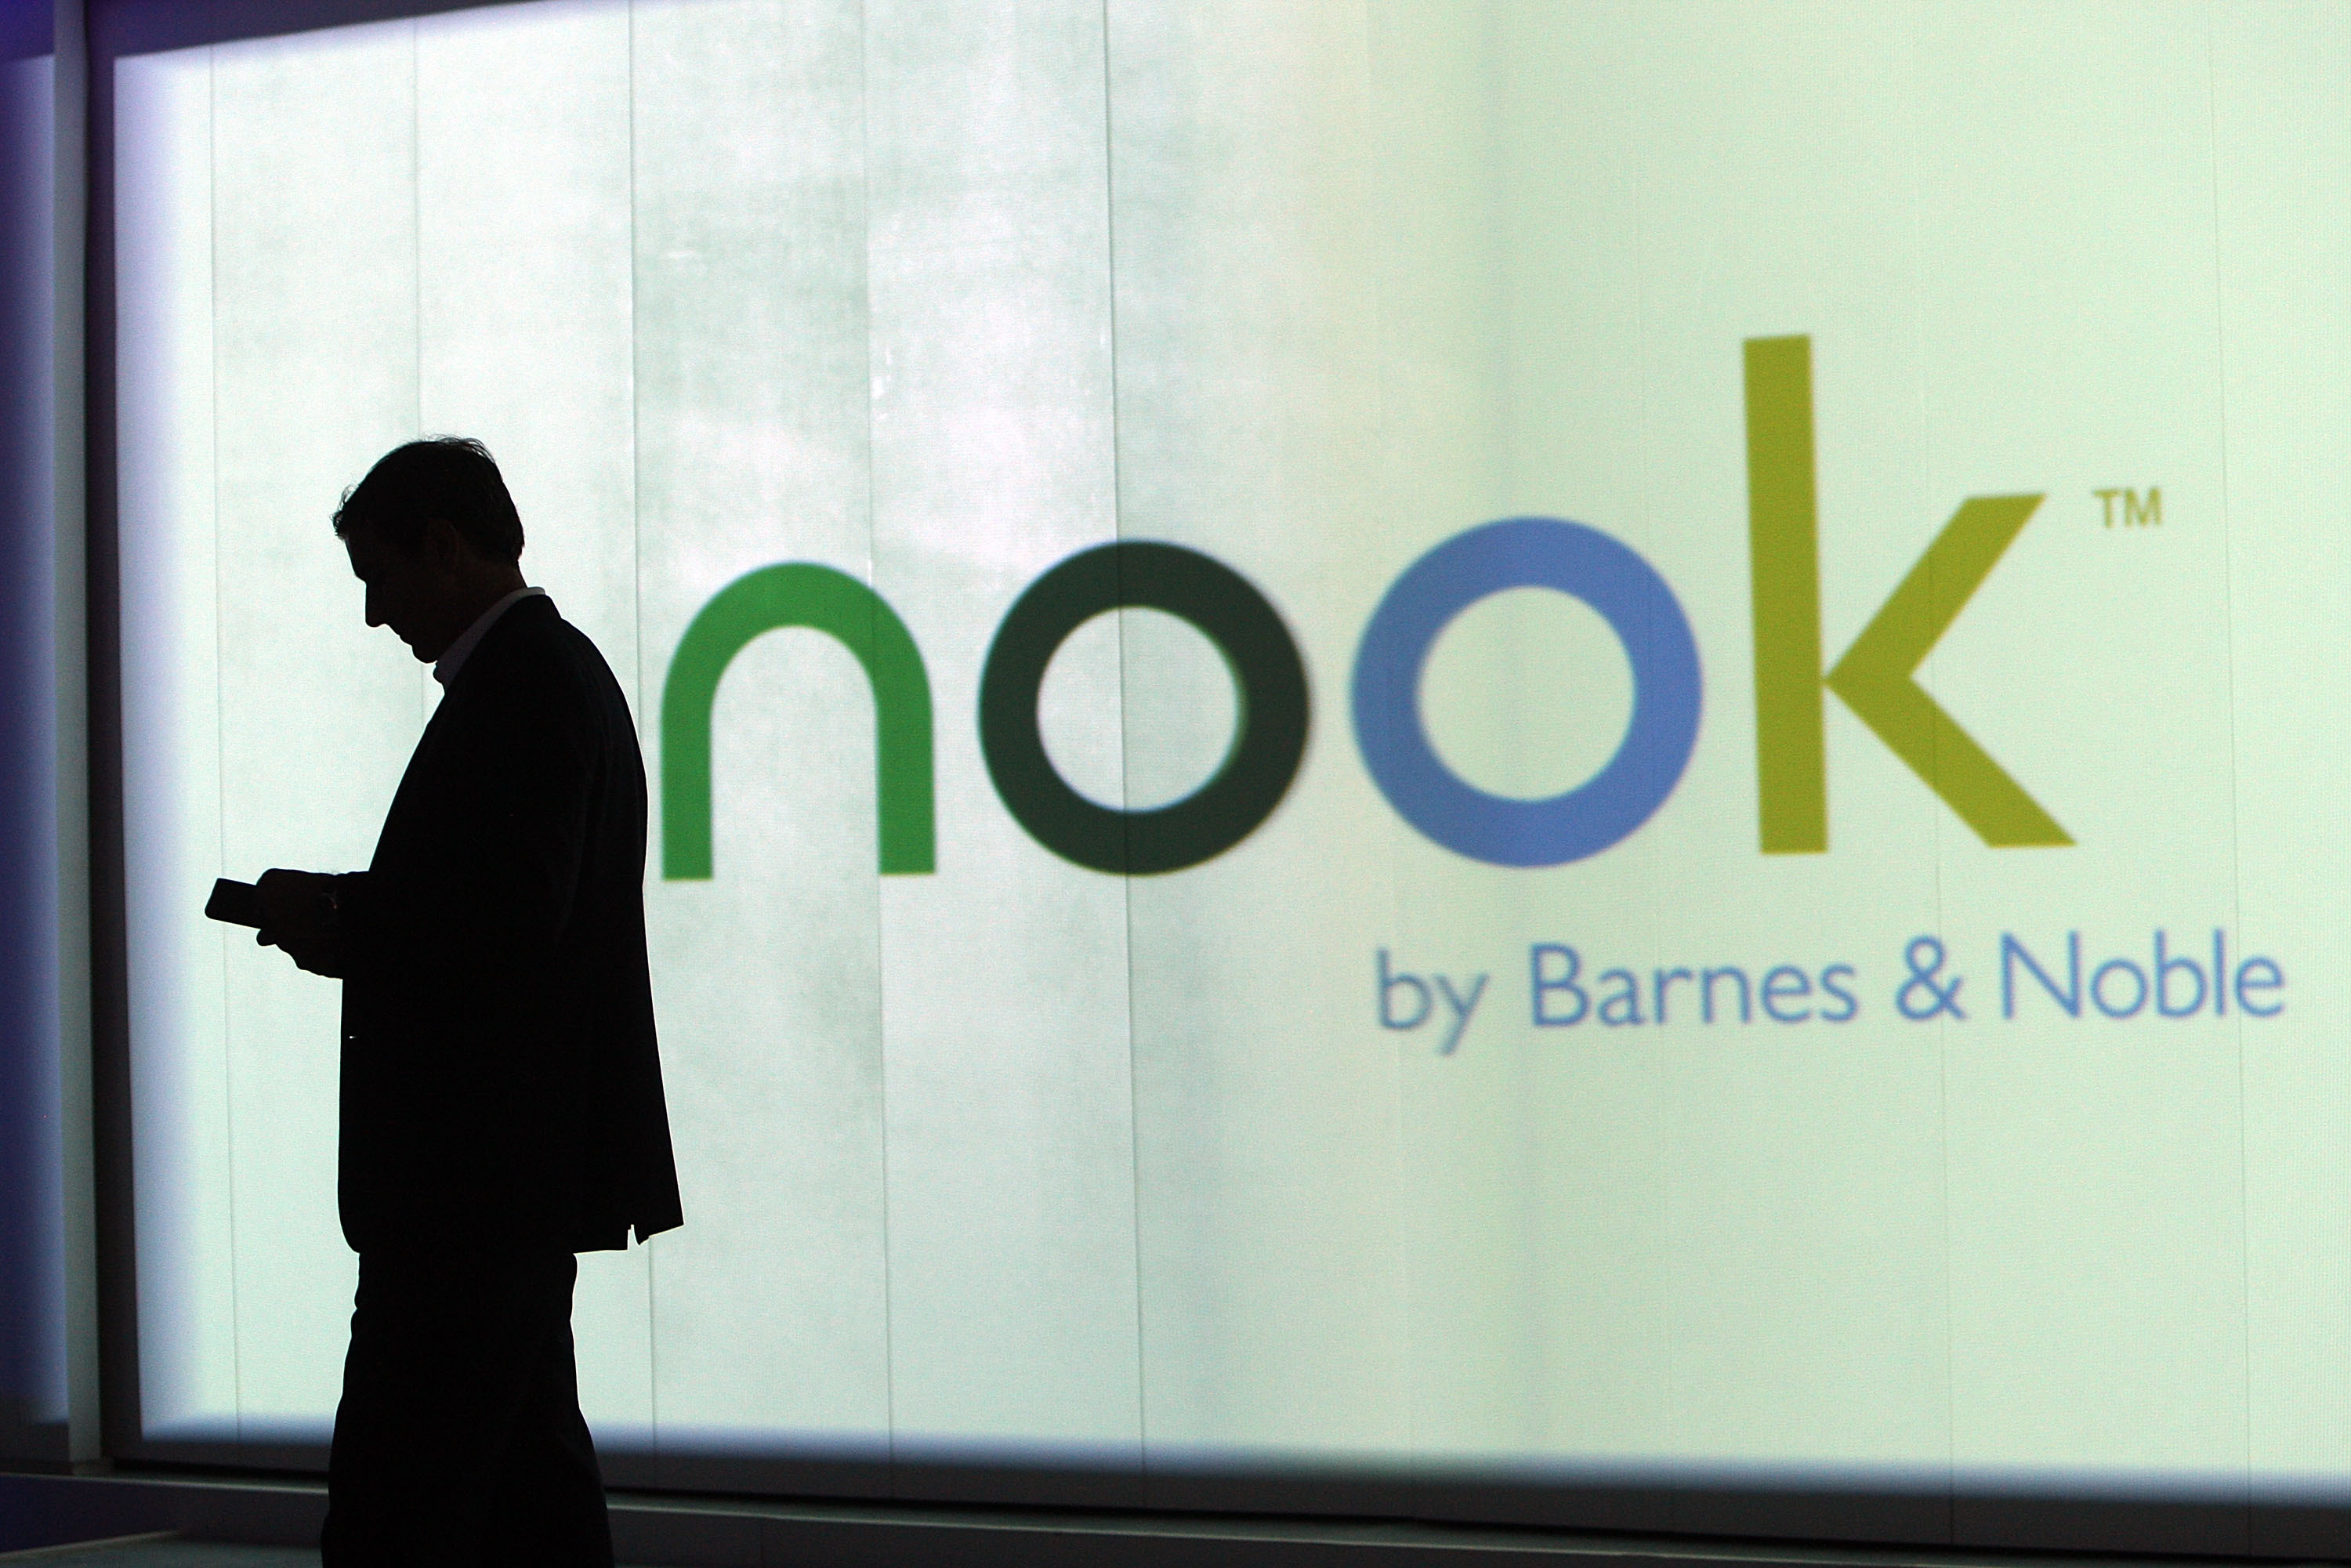 Book News: Microsoft Rumored To Be Interested In Buying Nook